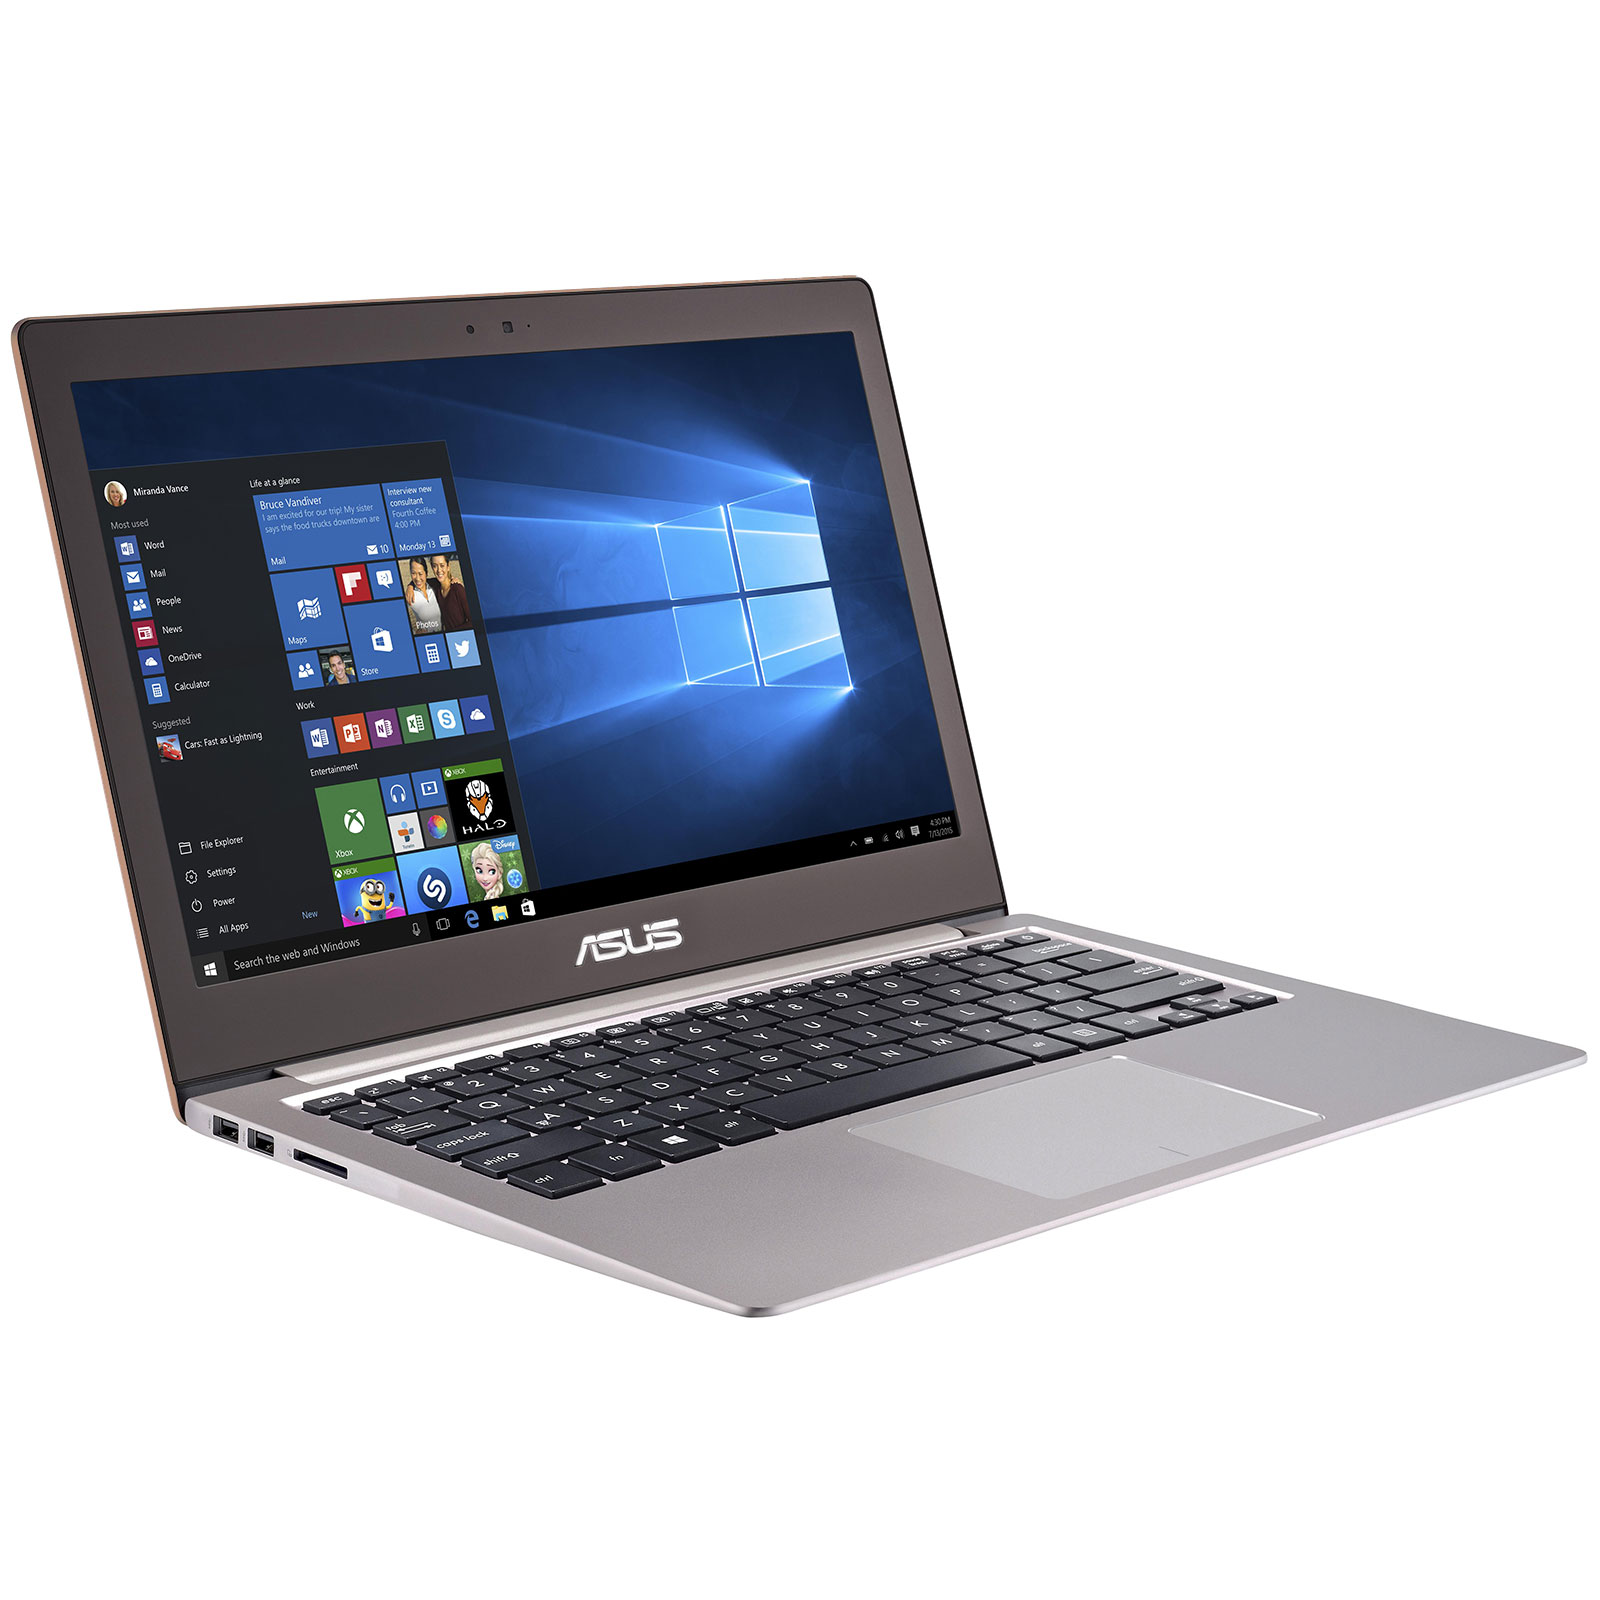 asus zenbook ux303ua r4135r ux303ua r4135r achat vente pc portable sur. Black Bedroom Furniture Sets. Home Design Ideas